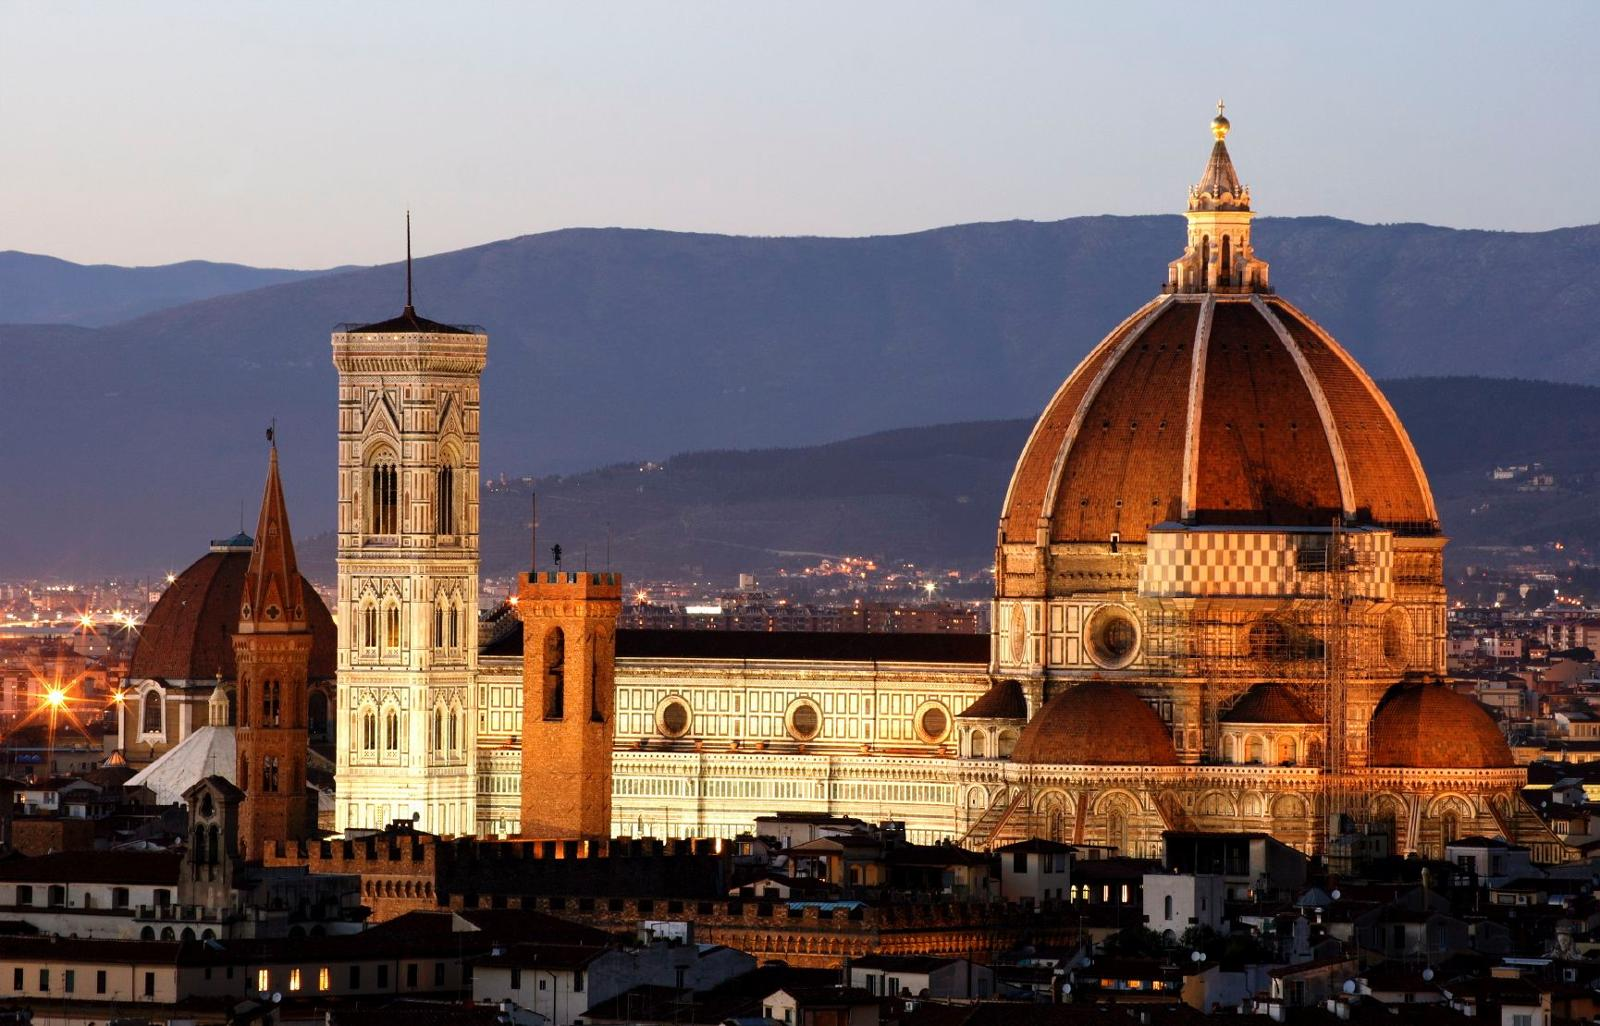 Italian Florence: Let's Enjoy The Beauty: Florence,Italy ( One Of The Most